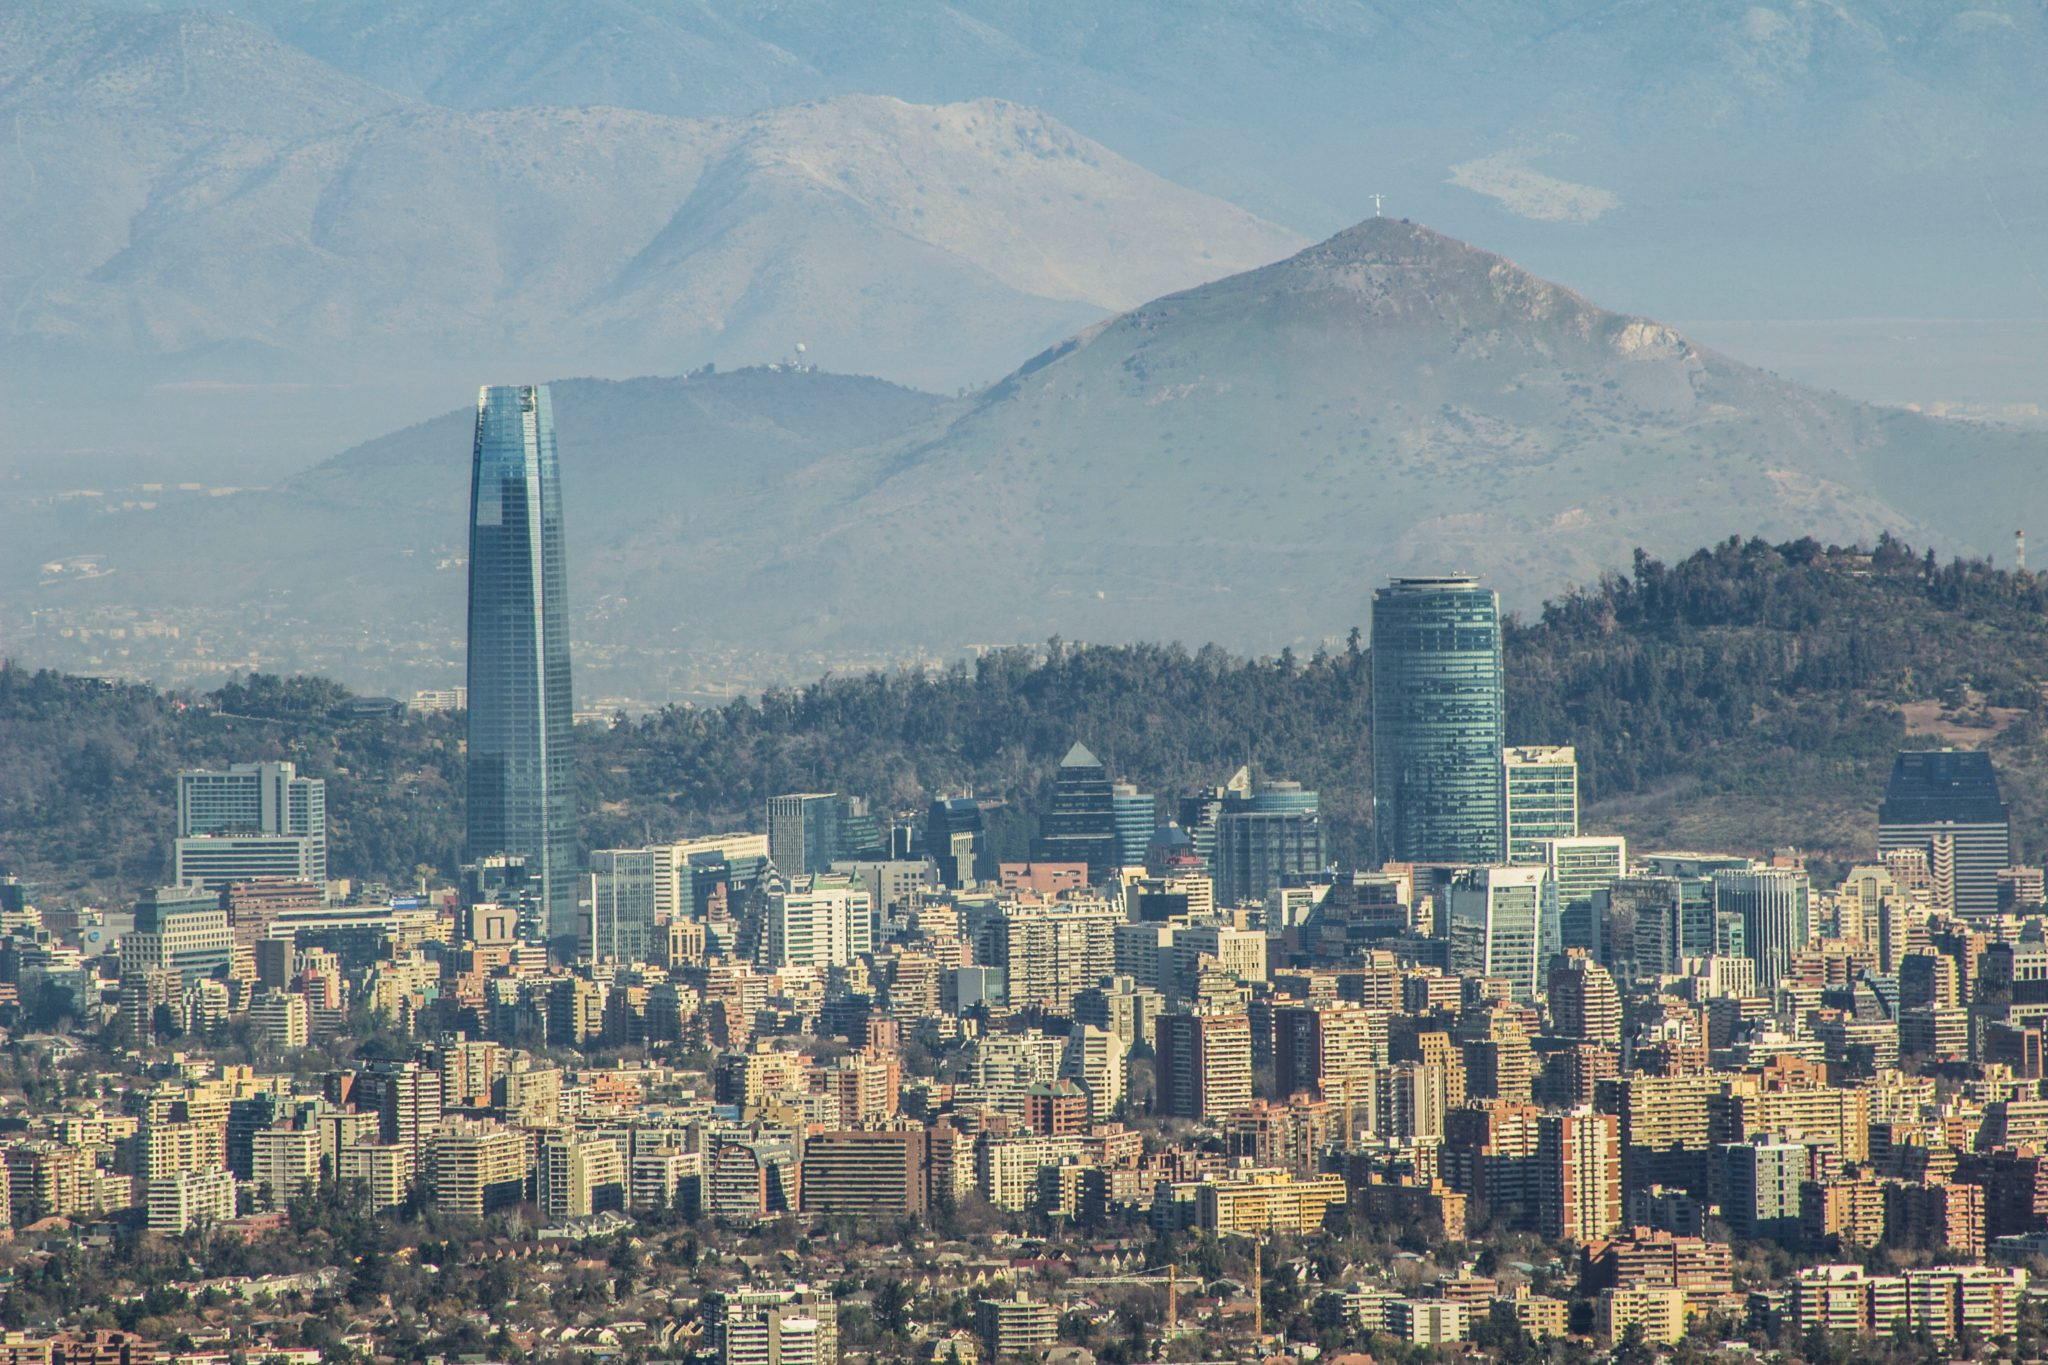 Photo of Santiago, Chile skyline with mountains in the background